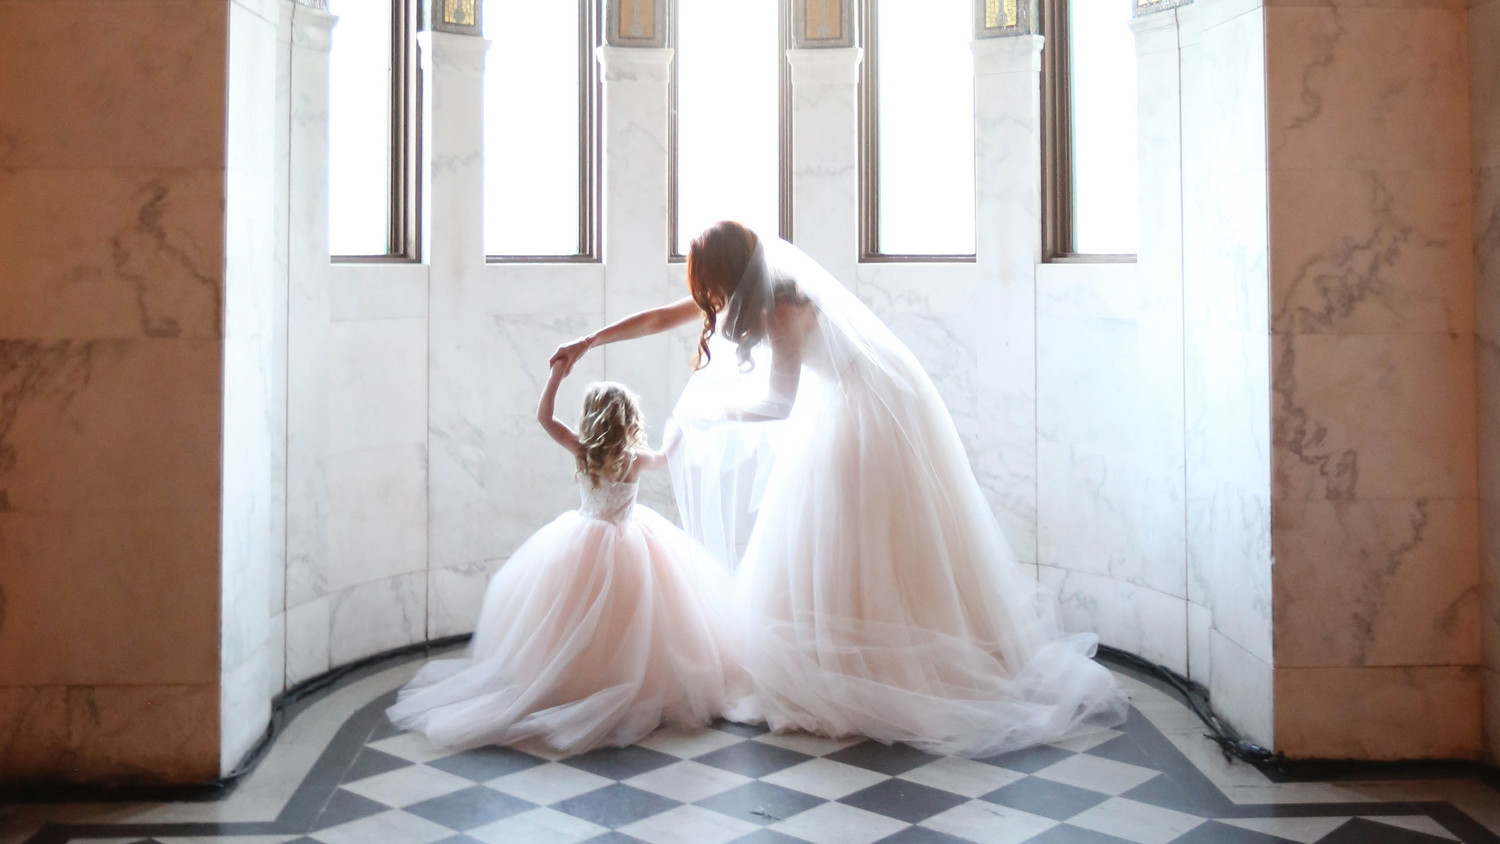 mother daughter moments elizabeth messina 03 0517 horiz - summer beach wedding mother of the bride dresses